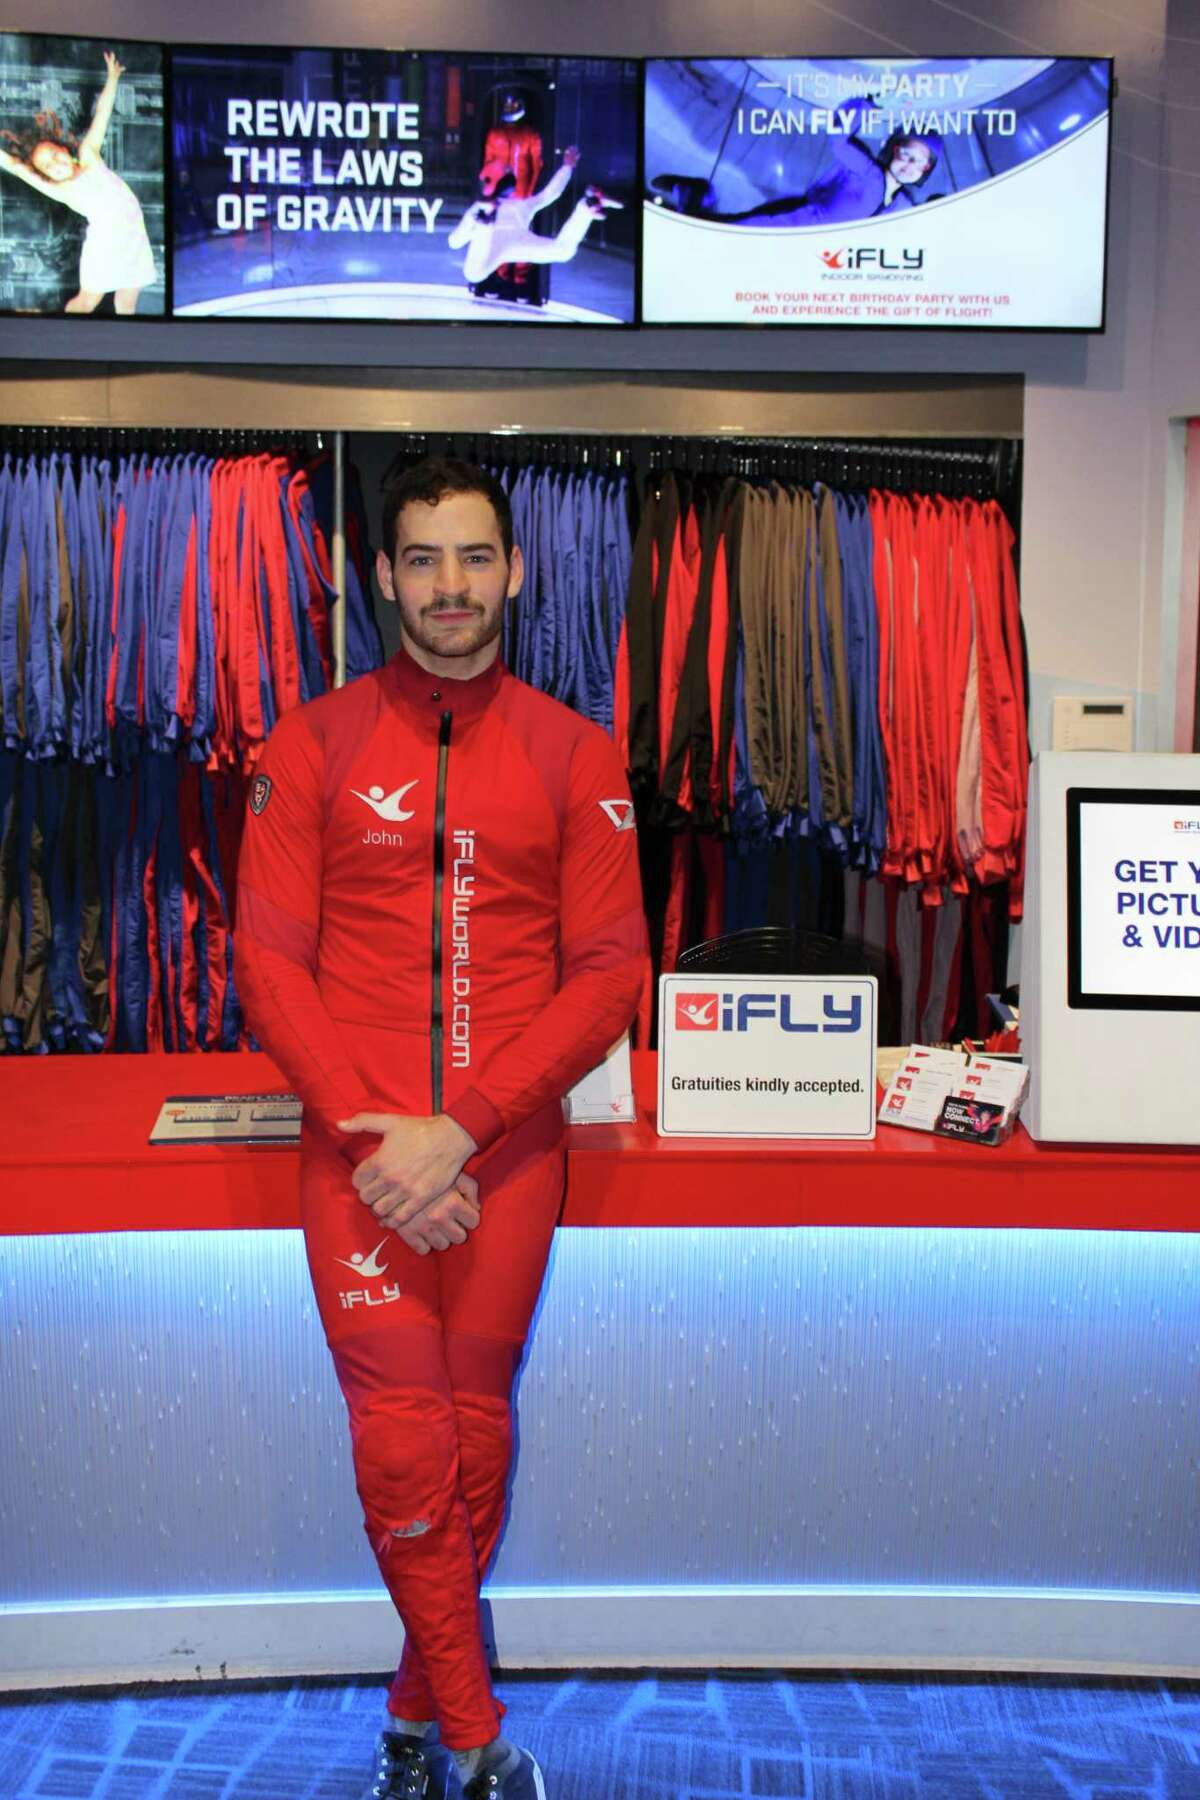 John Wiggins, a flight instructor at iFly Houston in The Woodlands, competes in indoor skydiving competitions and went to the FAI Indoor Skydiving World Championship in October 2017.